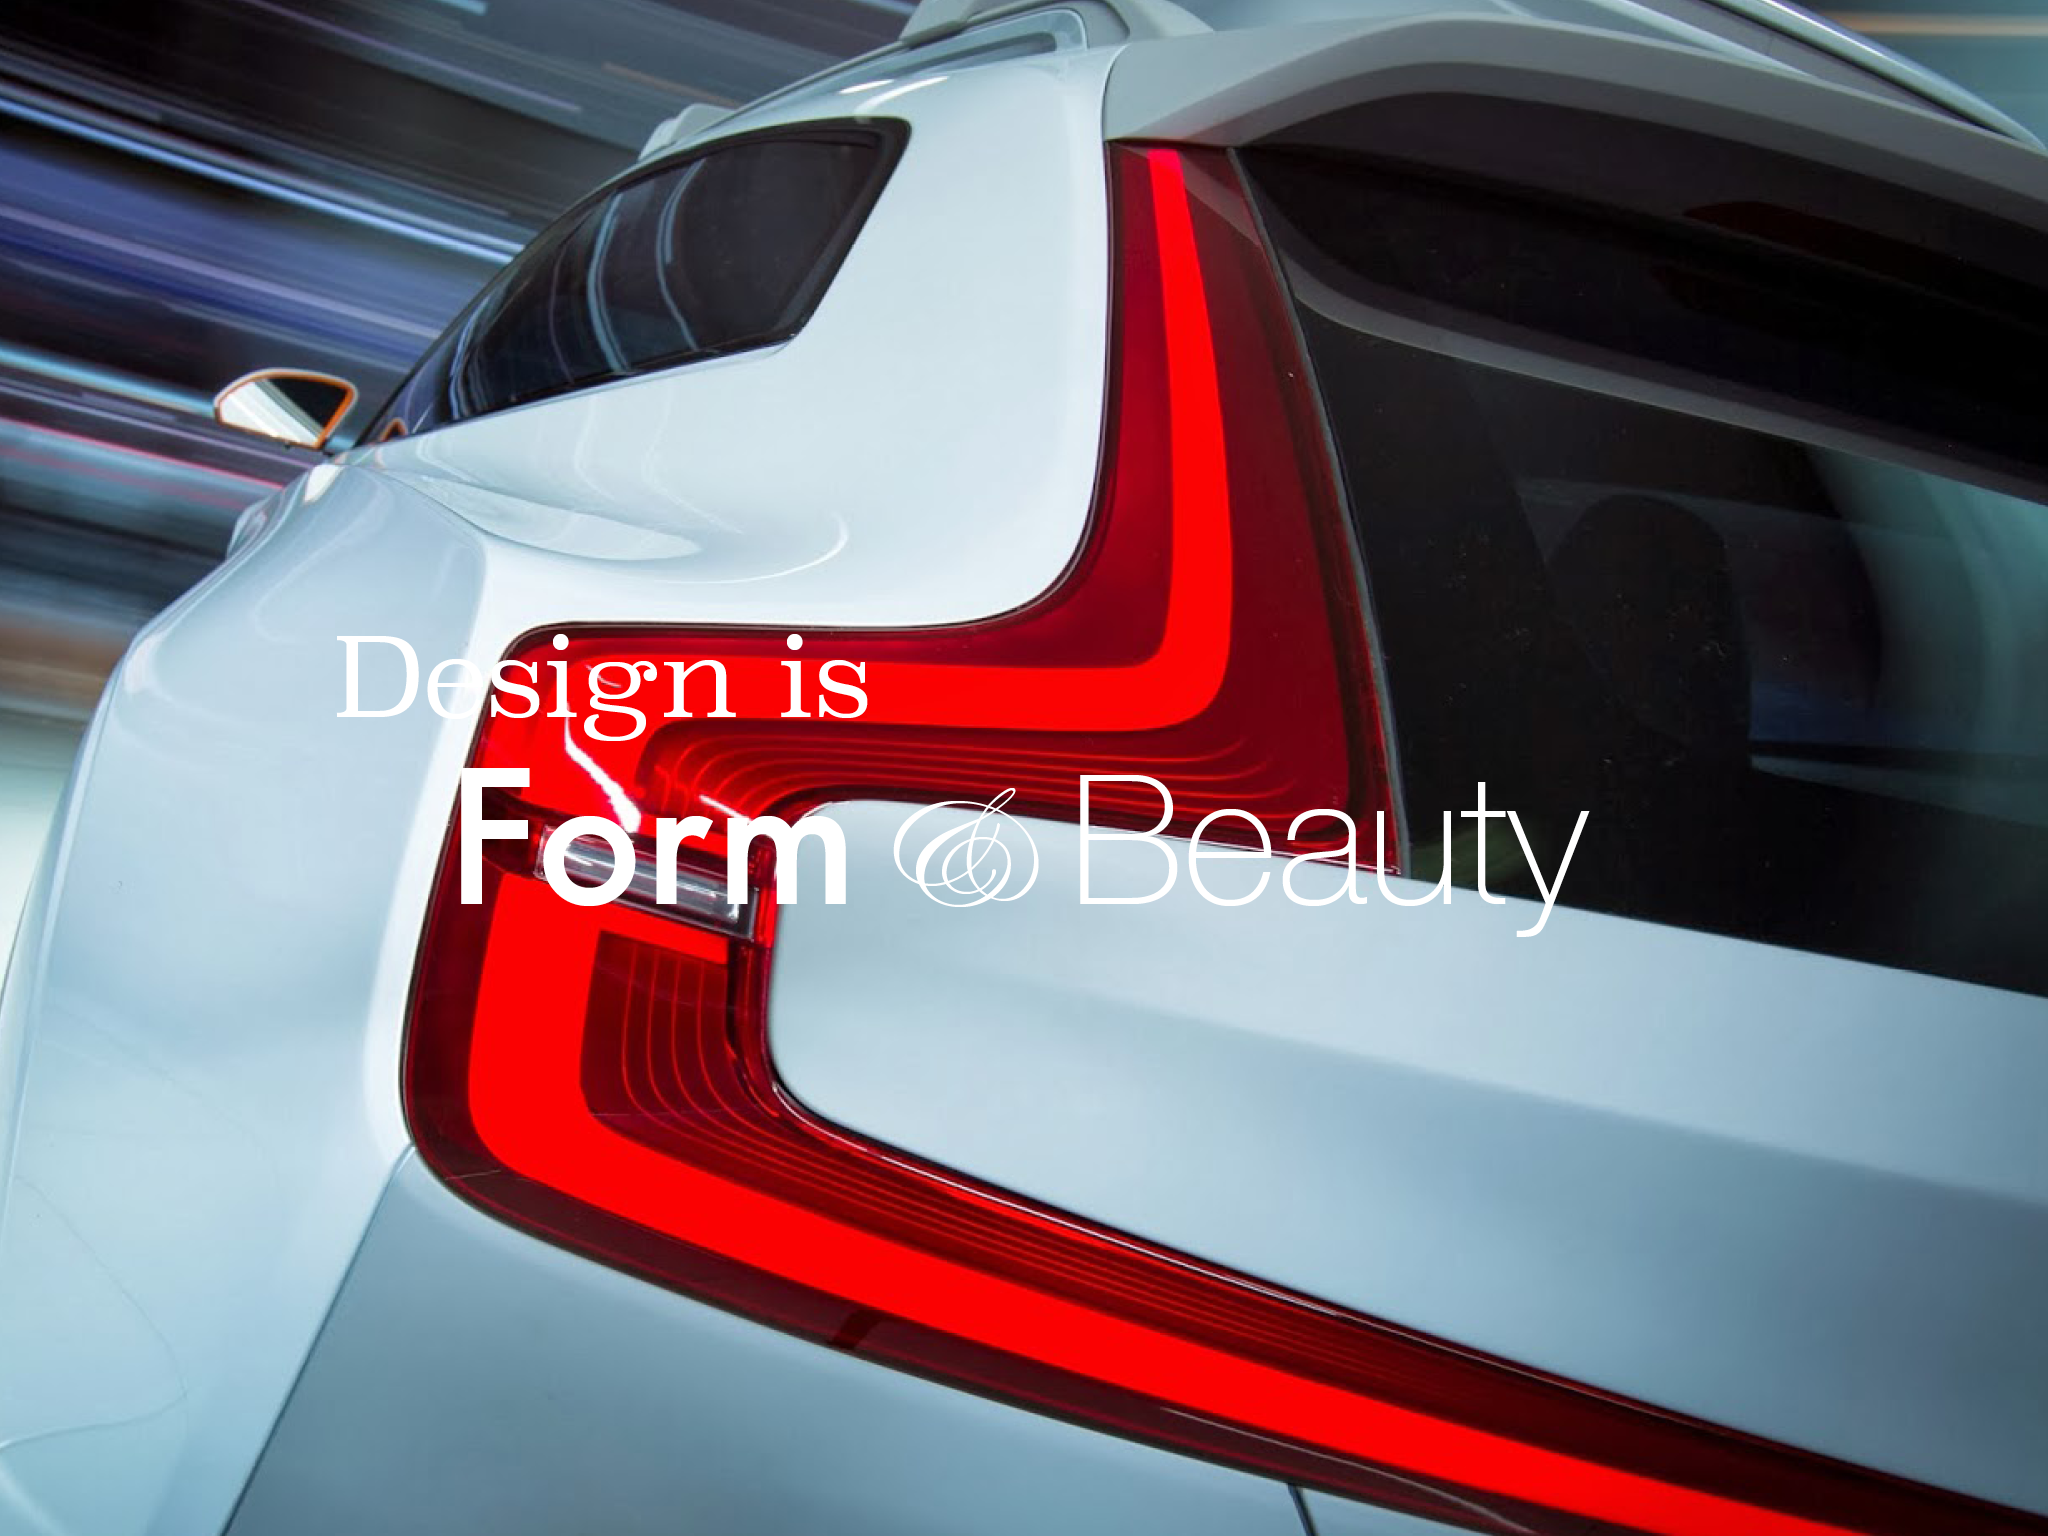 Design is form and beauty4